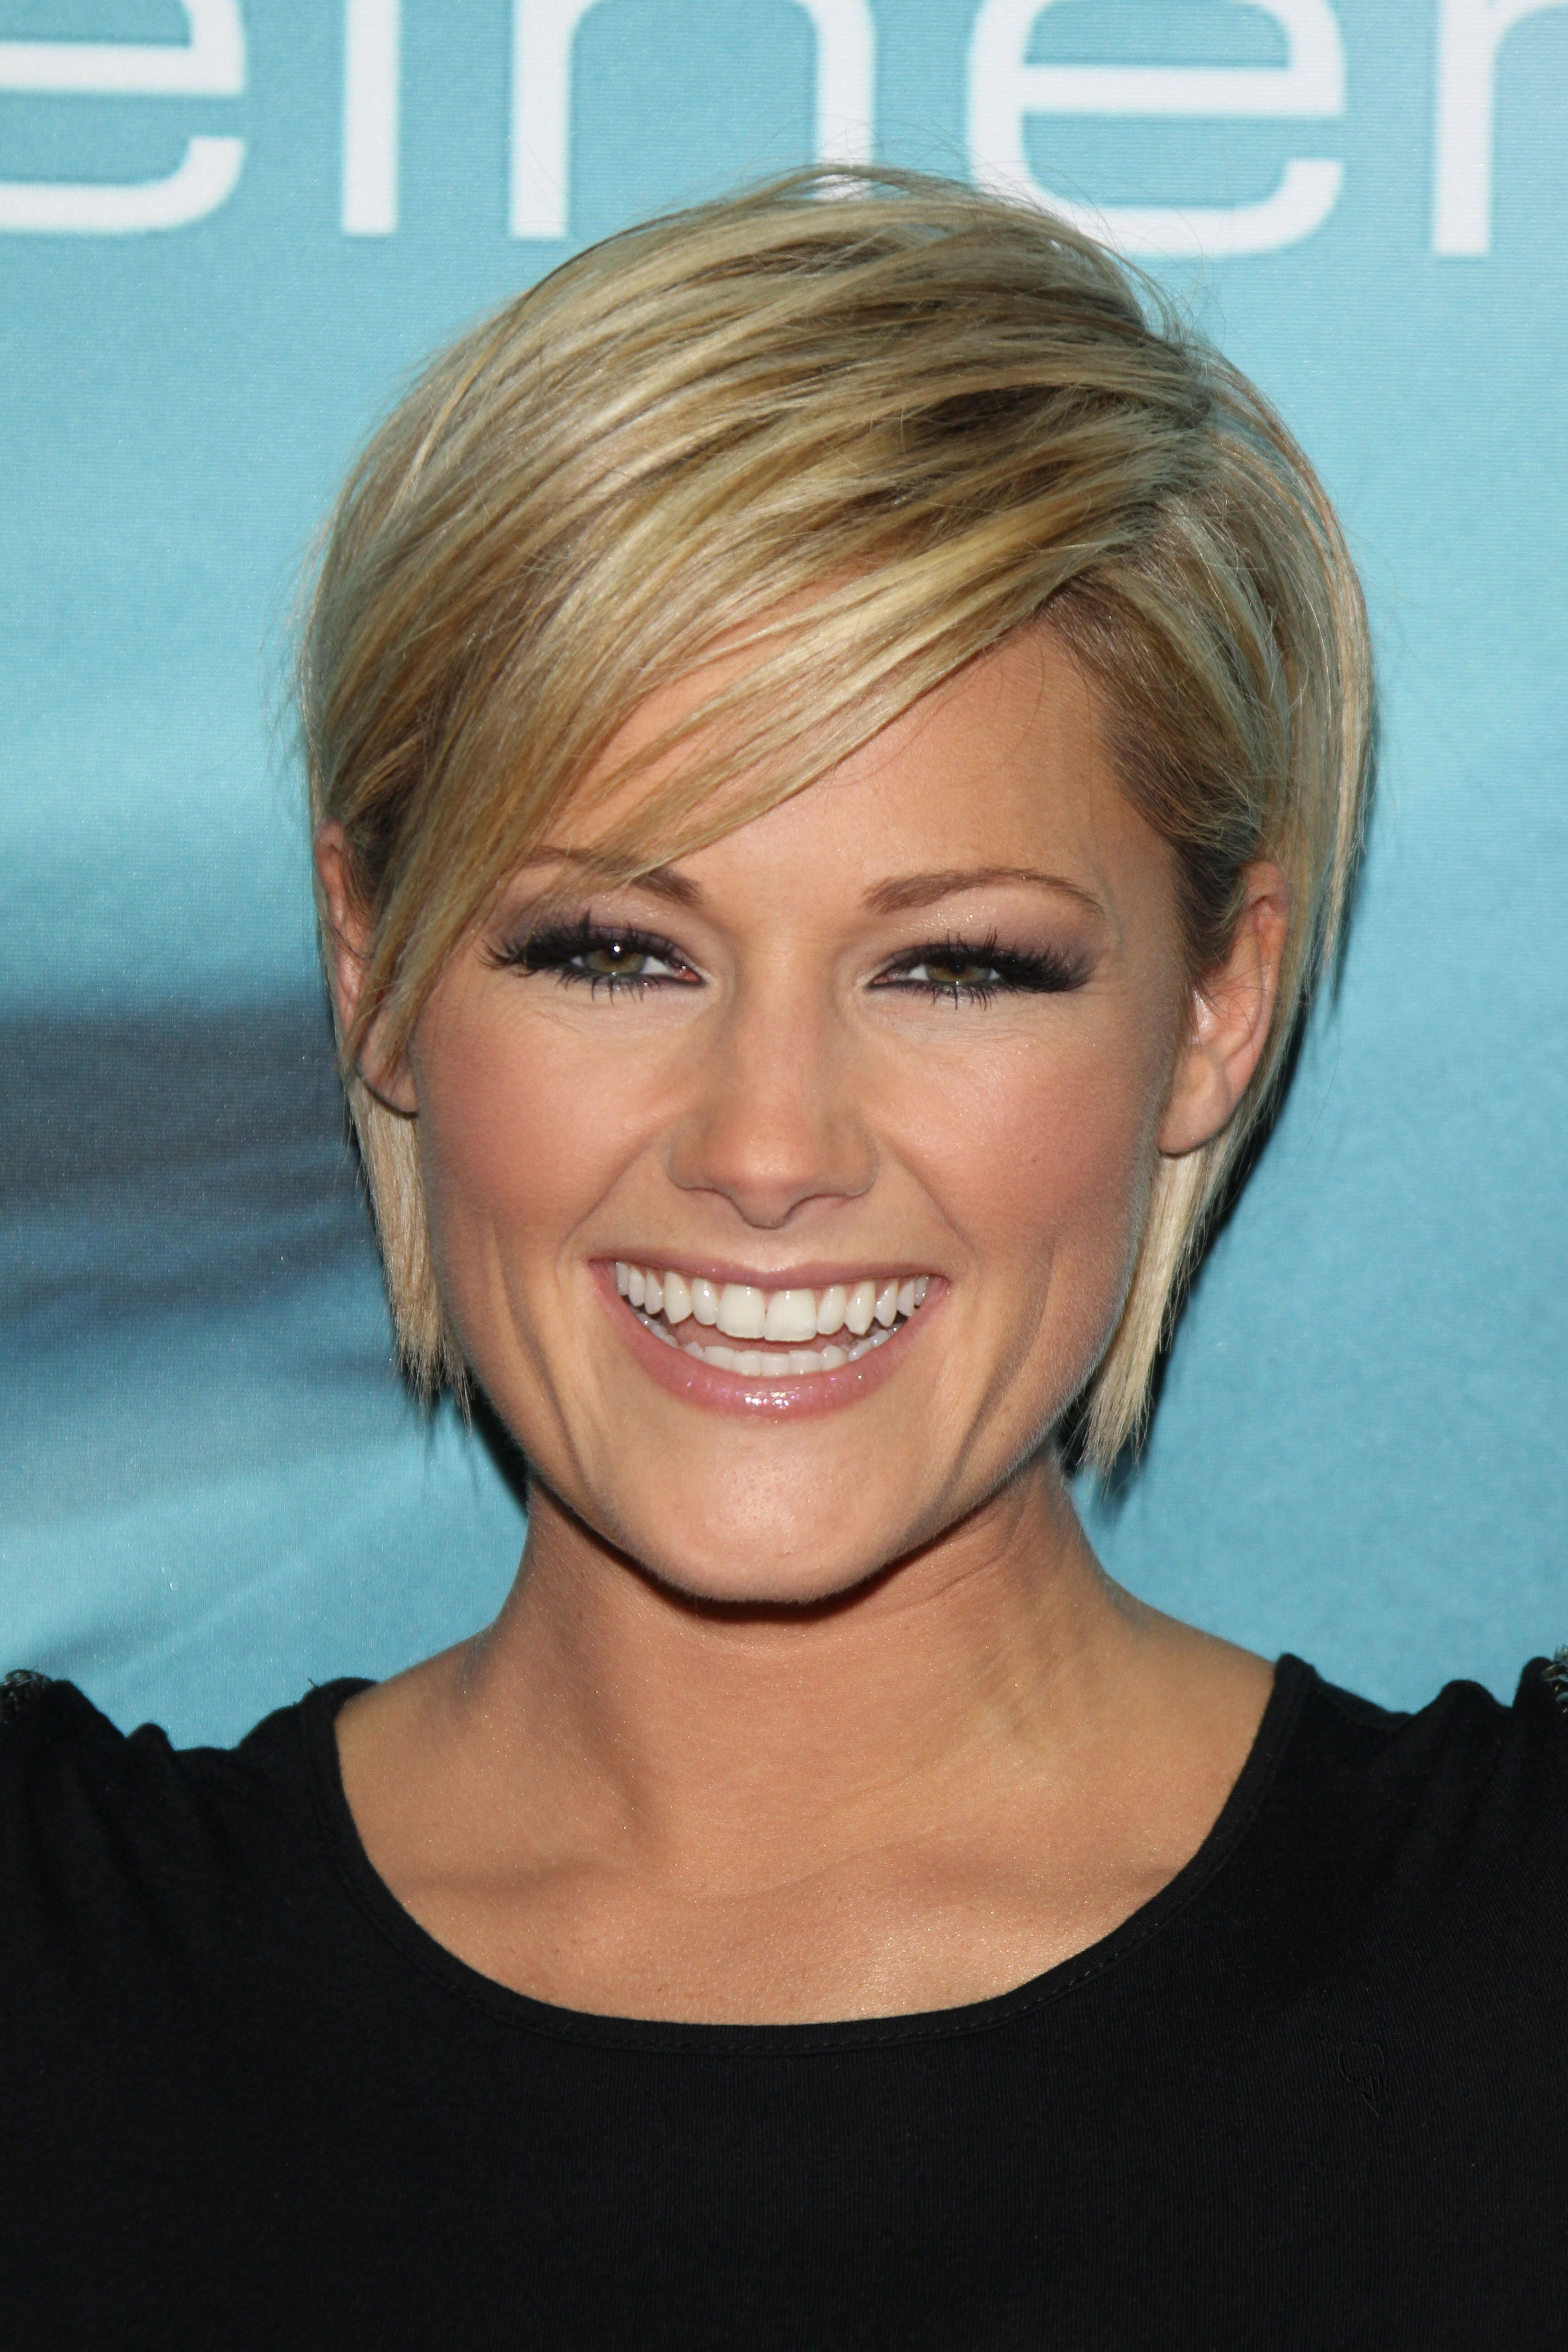 Helene Fischer Love Her Haircut Hair Styles Short Hair Styles Easy Long Hair Styles